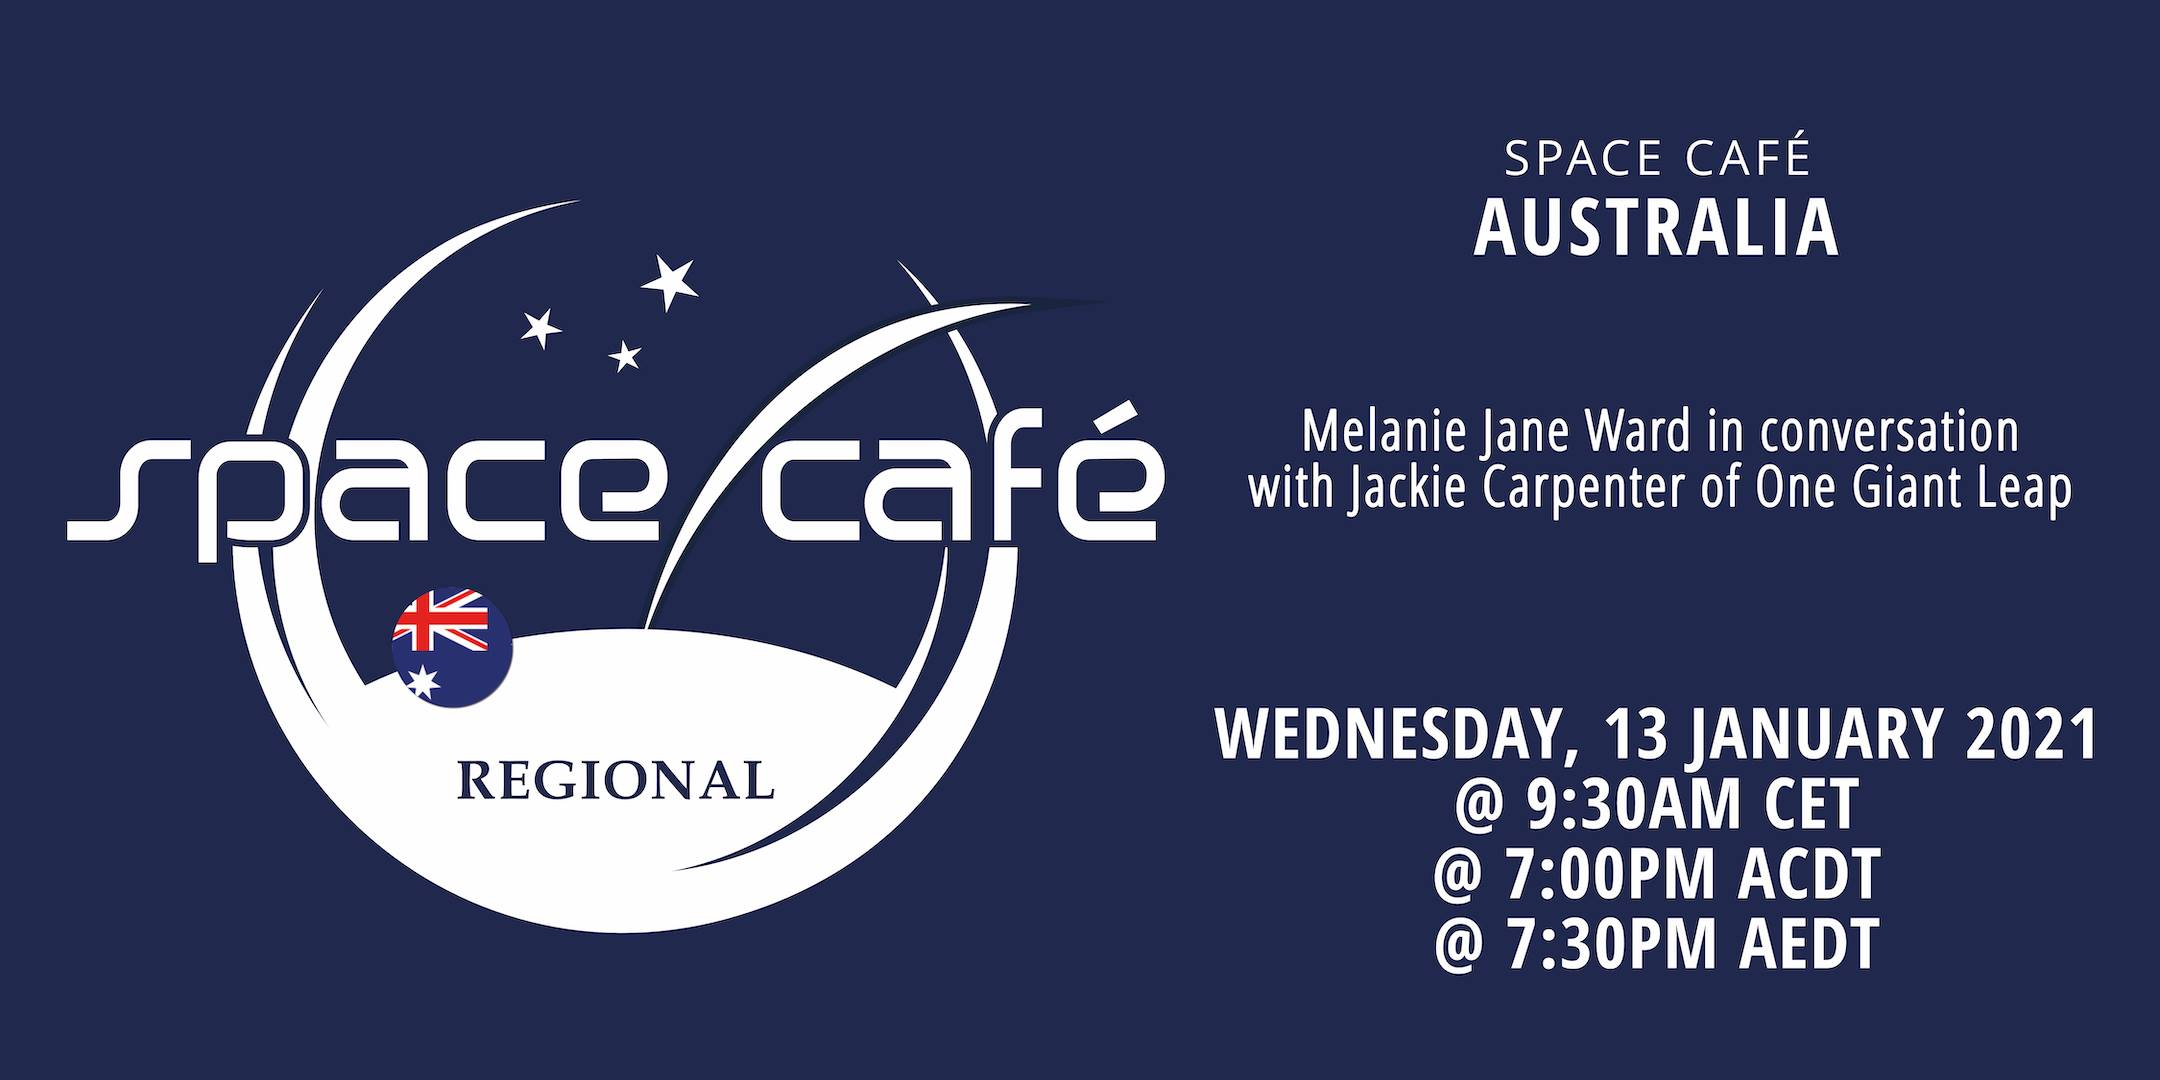 Space Café Australia by Melanie Jane Ward